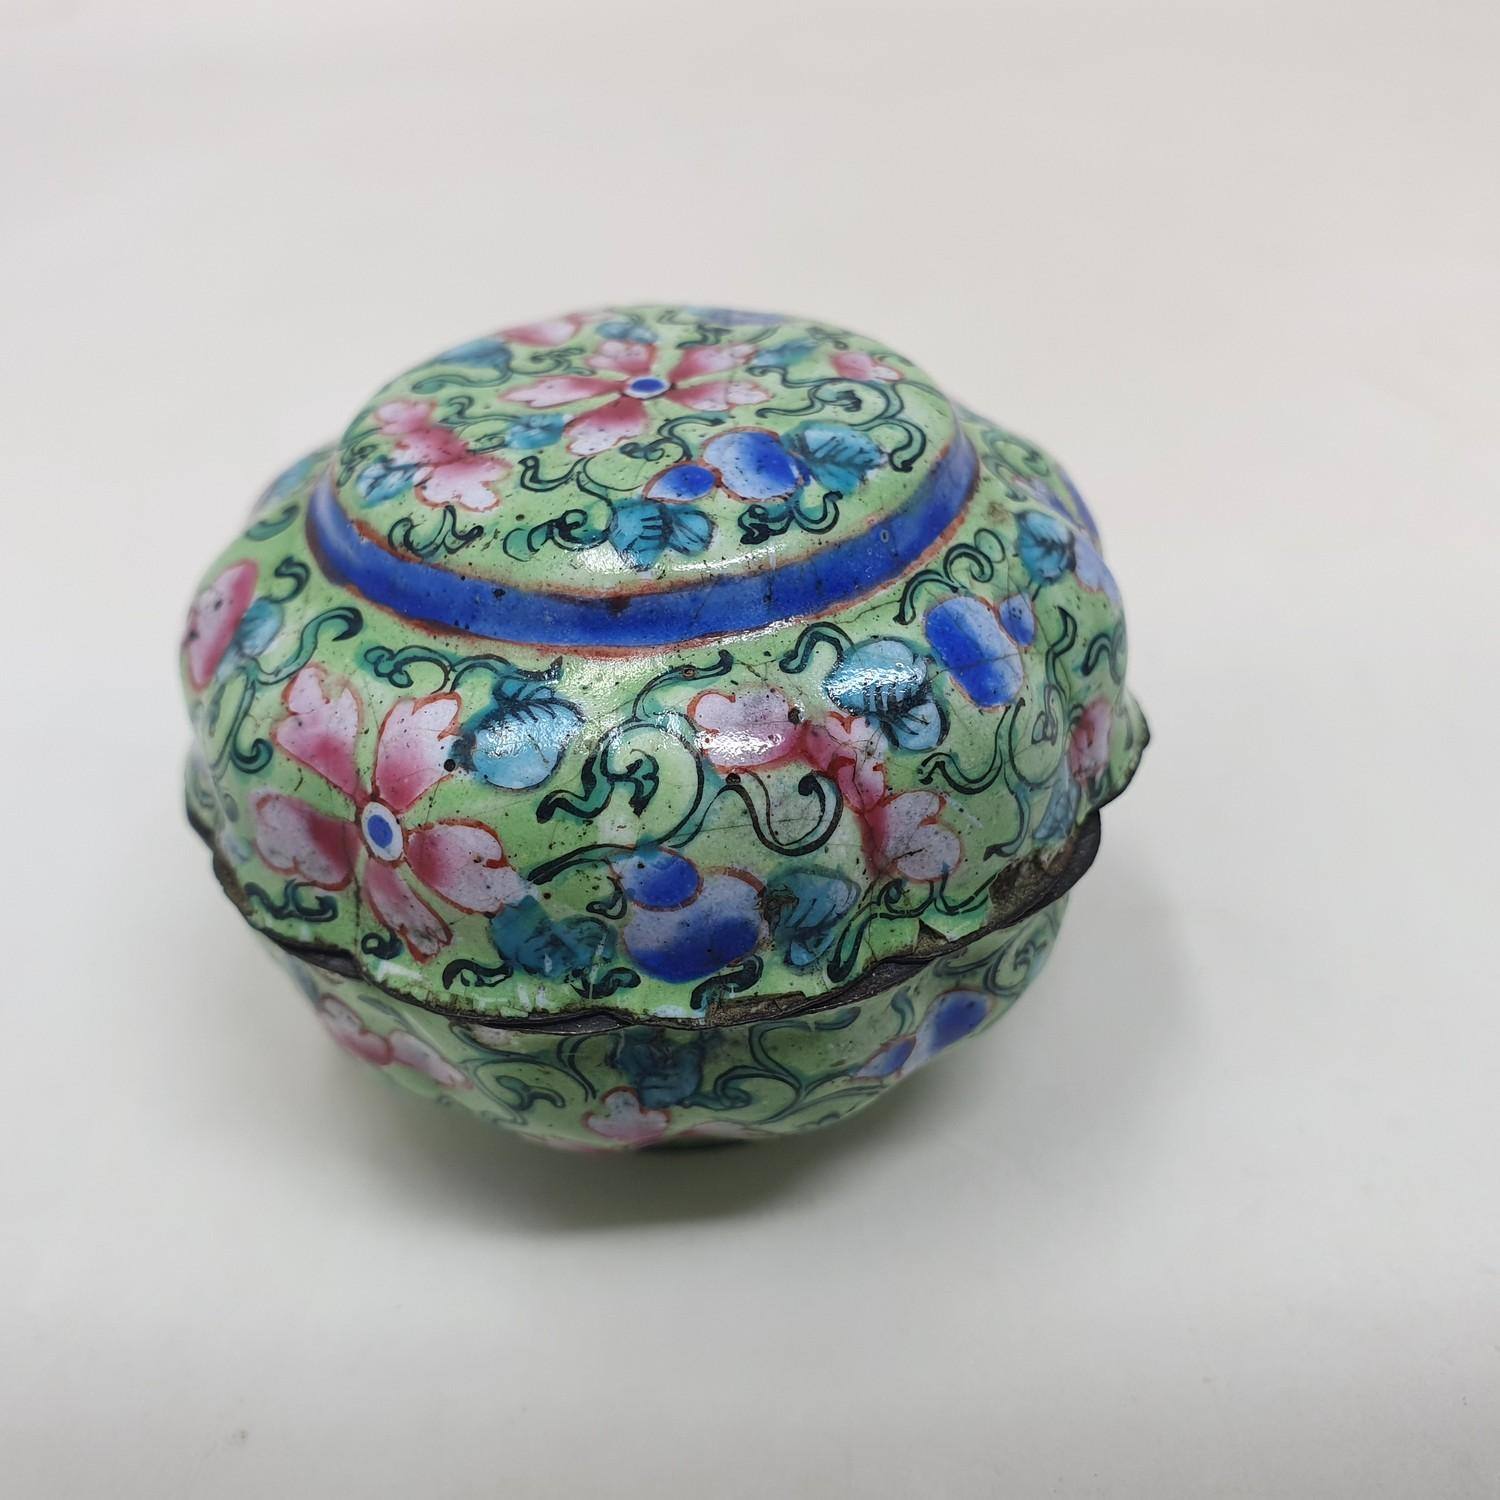 A Canton enamel pot and cover, decorated flowers on a green ground, 3 cm diameter - Image 2 of 5